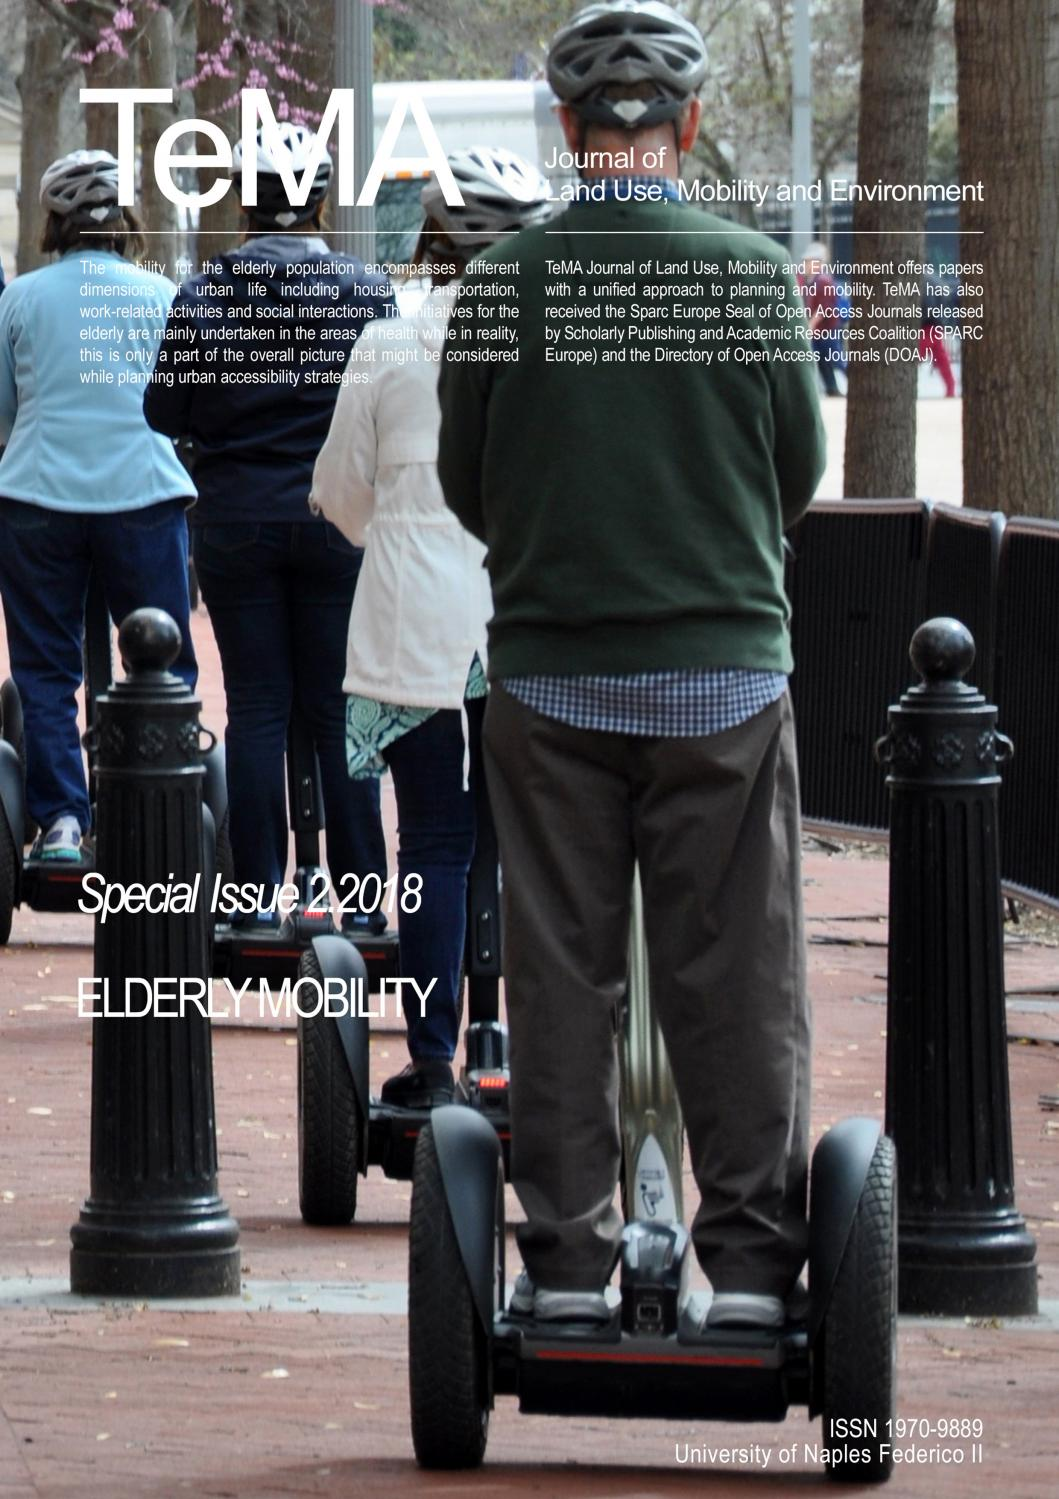 Special Issue 2 2018: Elderly Mobility by Rocco Papa - issuu